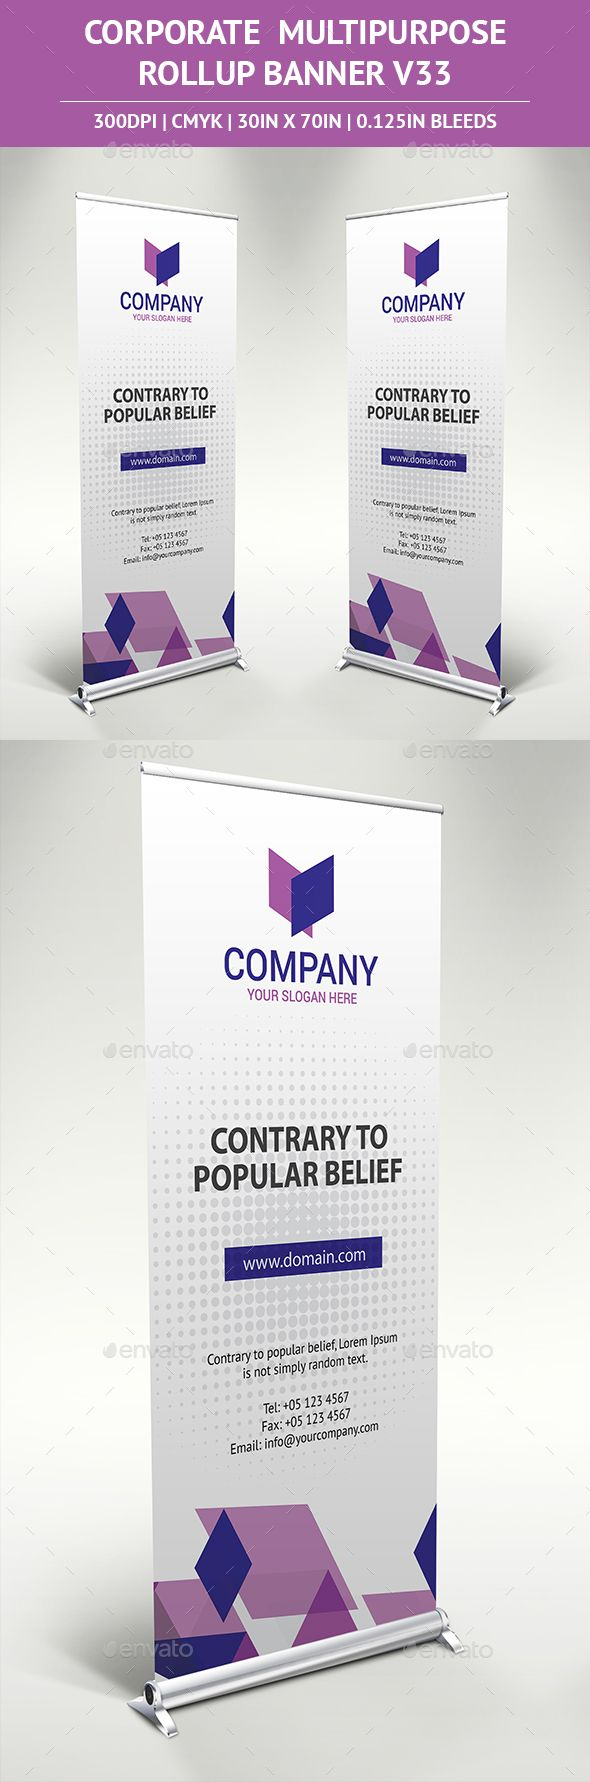 Rollup Banner Vector Template AI Illustrator #design Download: http://graphicriver.net/item/rollup-banner-vol33/13862517?ref=ksioks